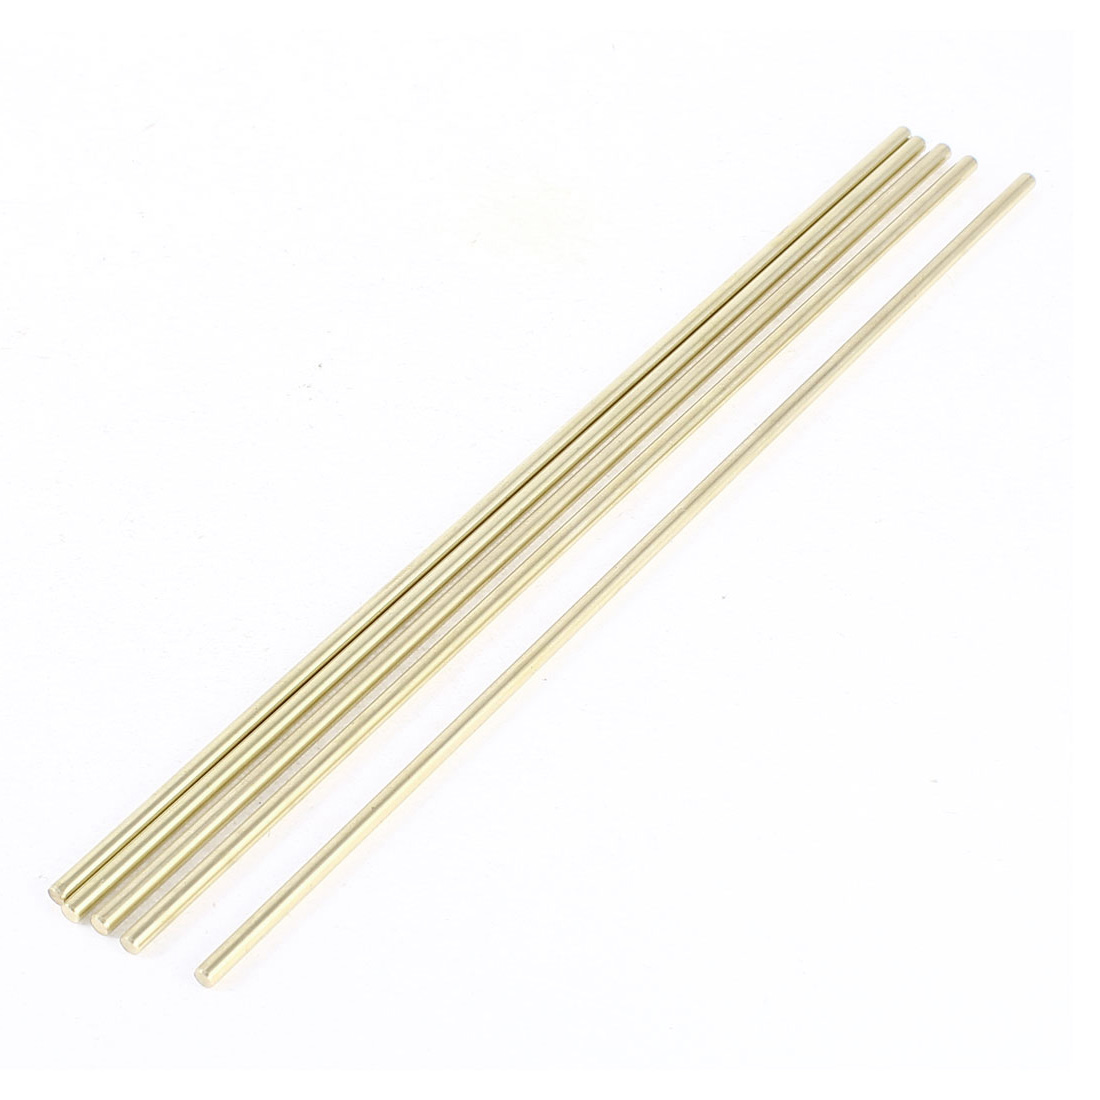 5 Pcs Car Helicopter Model Toy DIY Brass Axles Rod Bars 3mm x 190mm